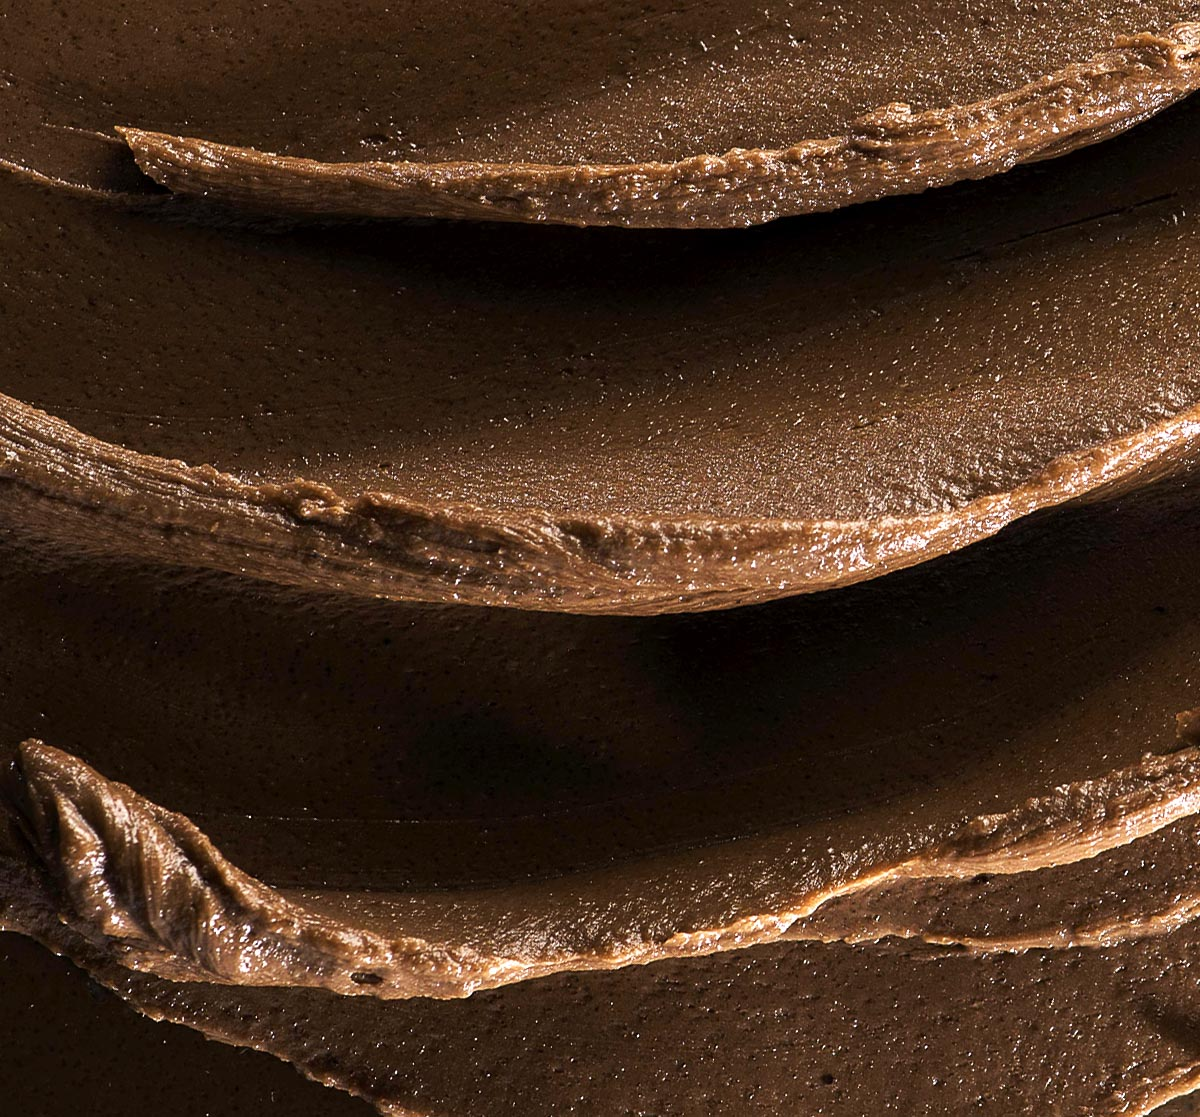 Native Image Station - CHOCO TEXTURE - L'ORÉAL SUGAR SCRUB